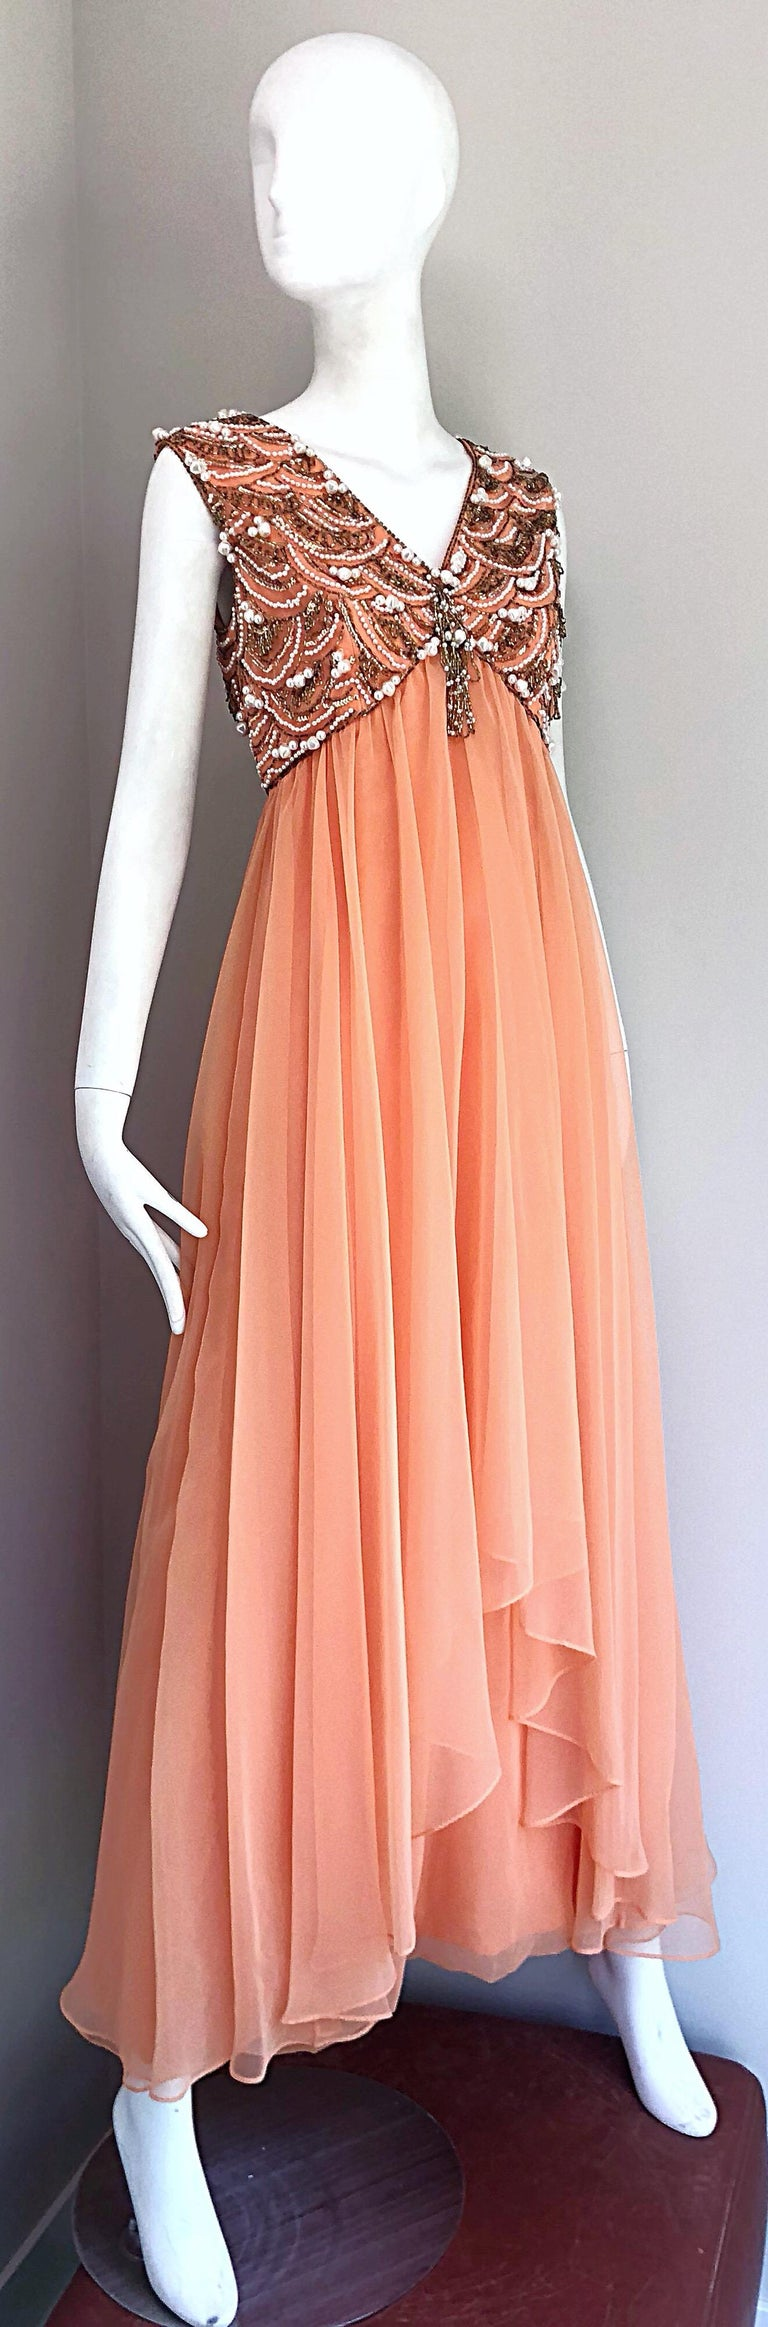 1960s Isabell Gerhart Sherbet Coral Demi Couture Beaded Chiffon 60s Gown Dress For Sale 6